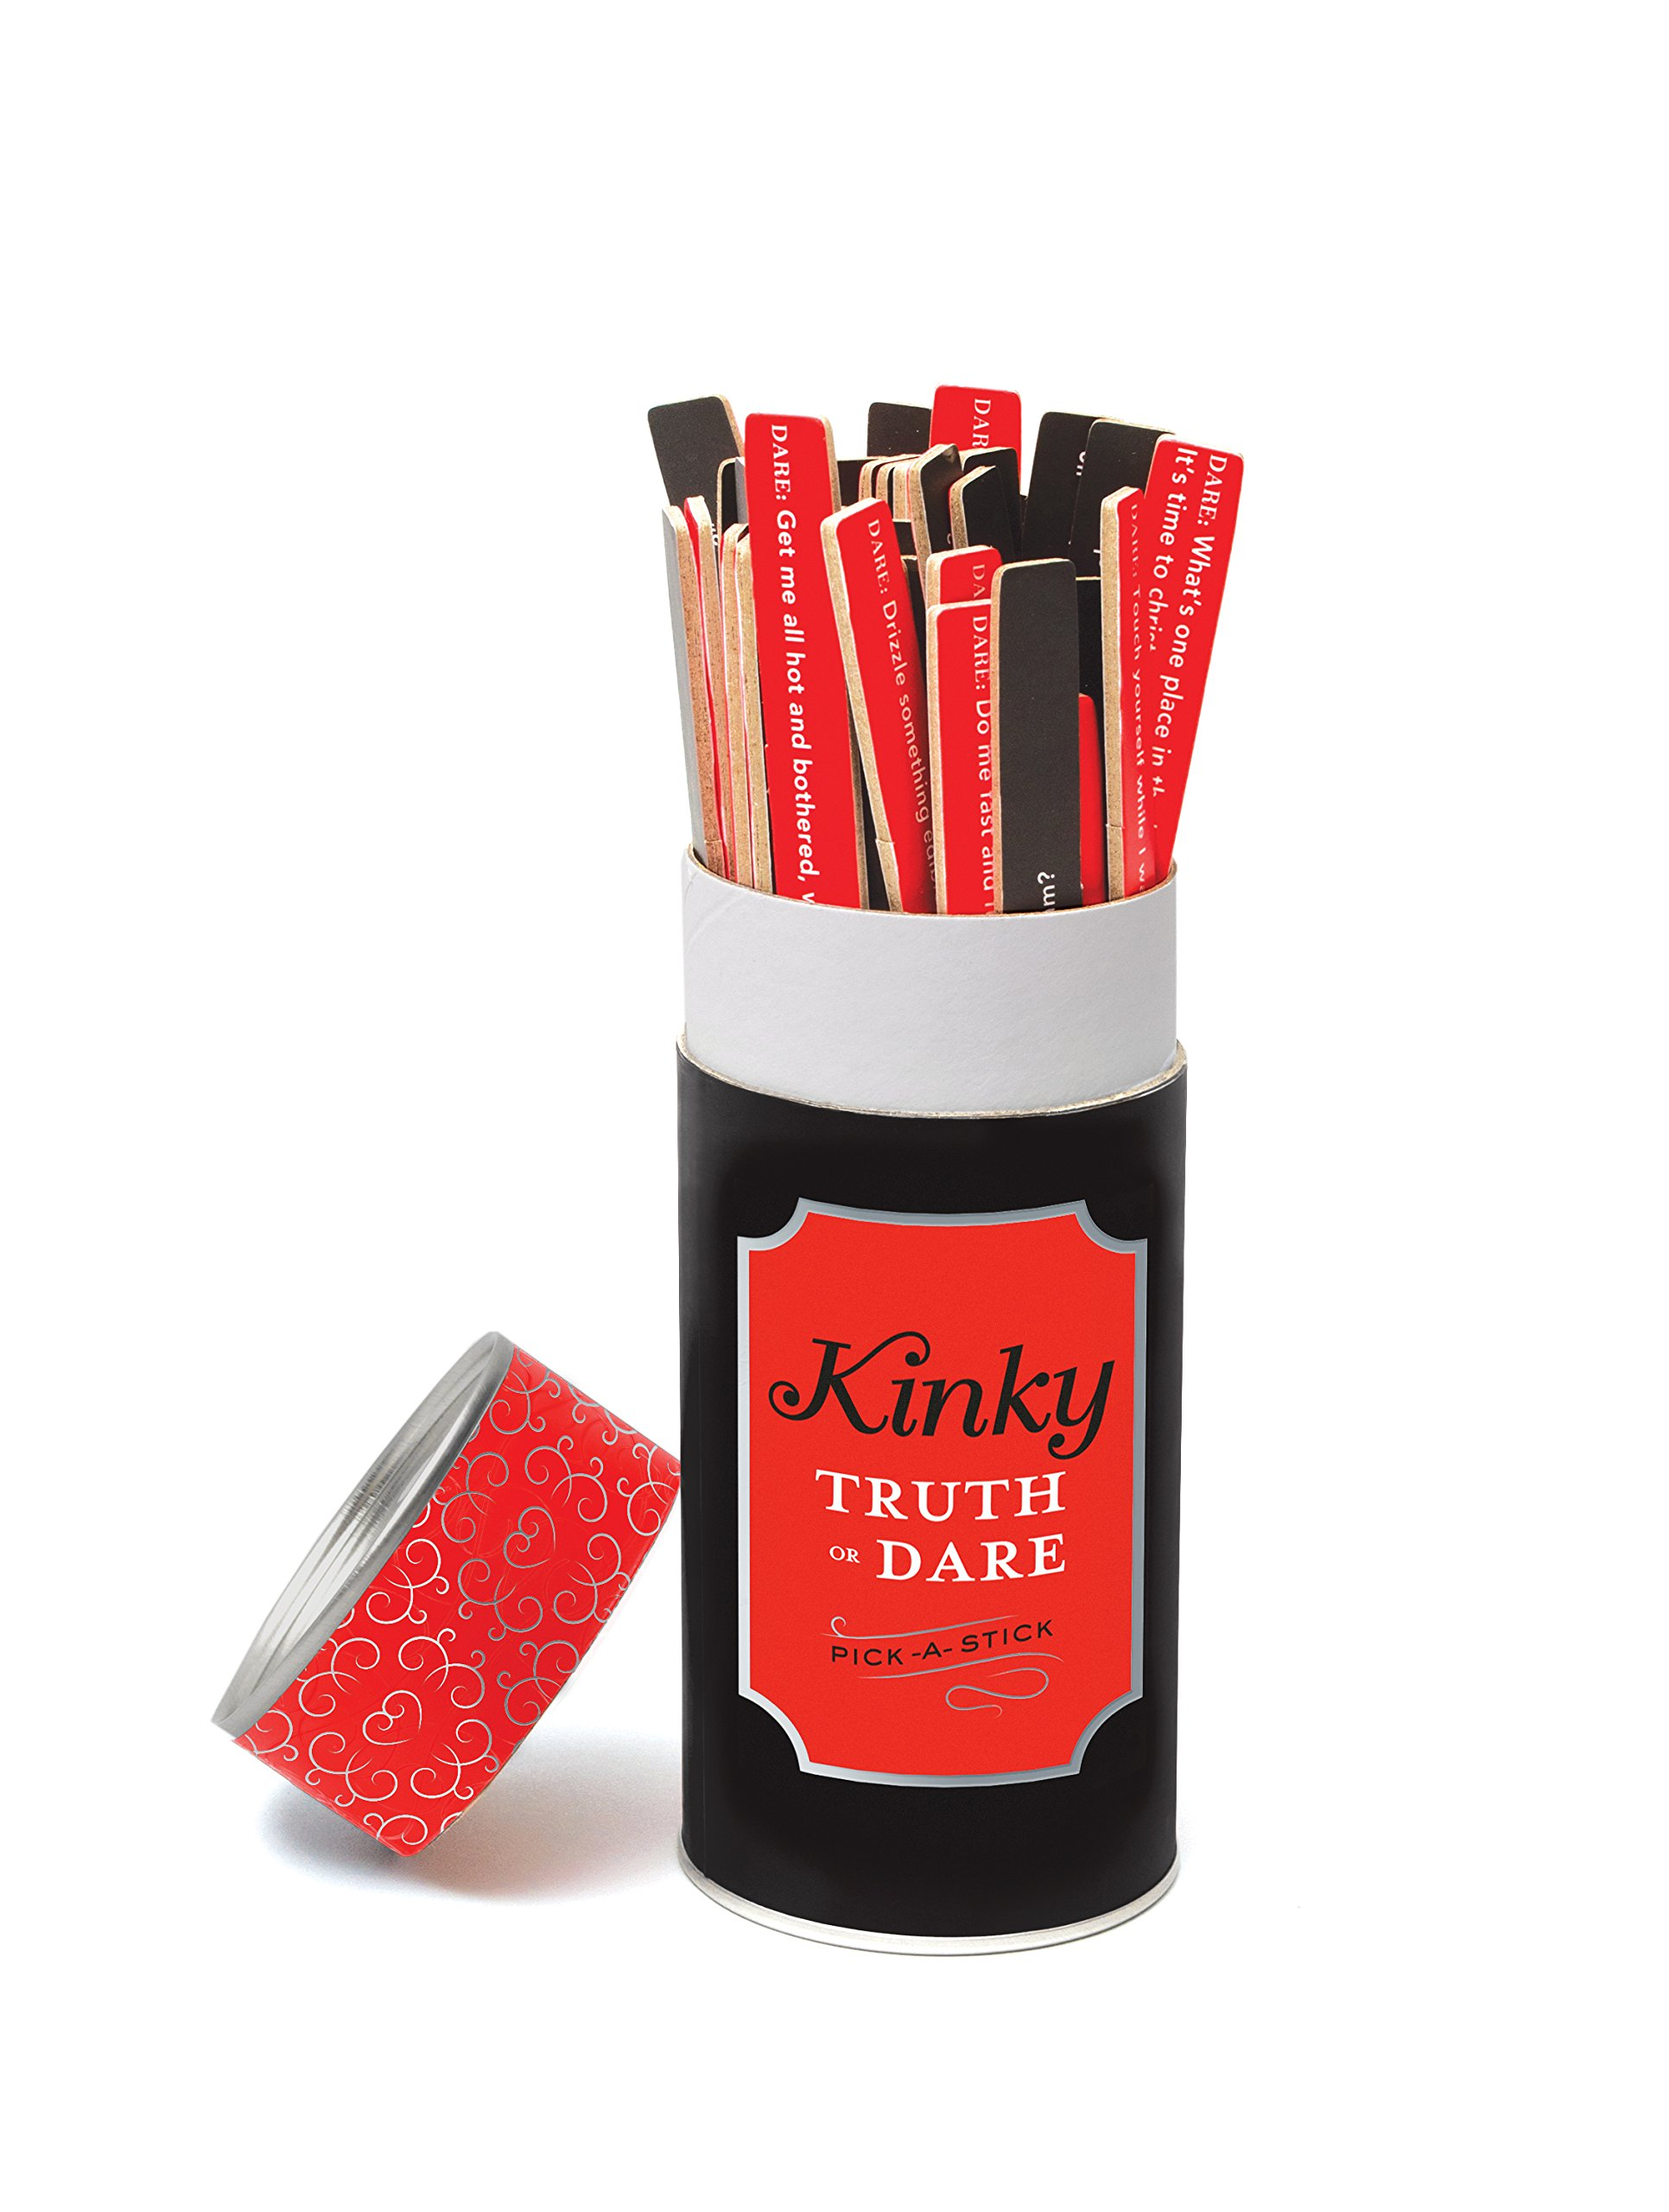 Buy Kinky Truth Or Dare: Pickastick (games) Book Online At Low Prices In  India  Kinky Truth Or Dare: Pickastick (games) Reviews & Ratings   Amazon